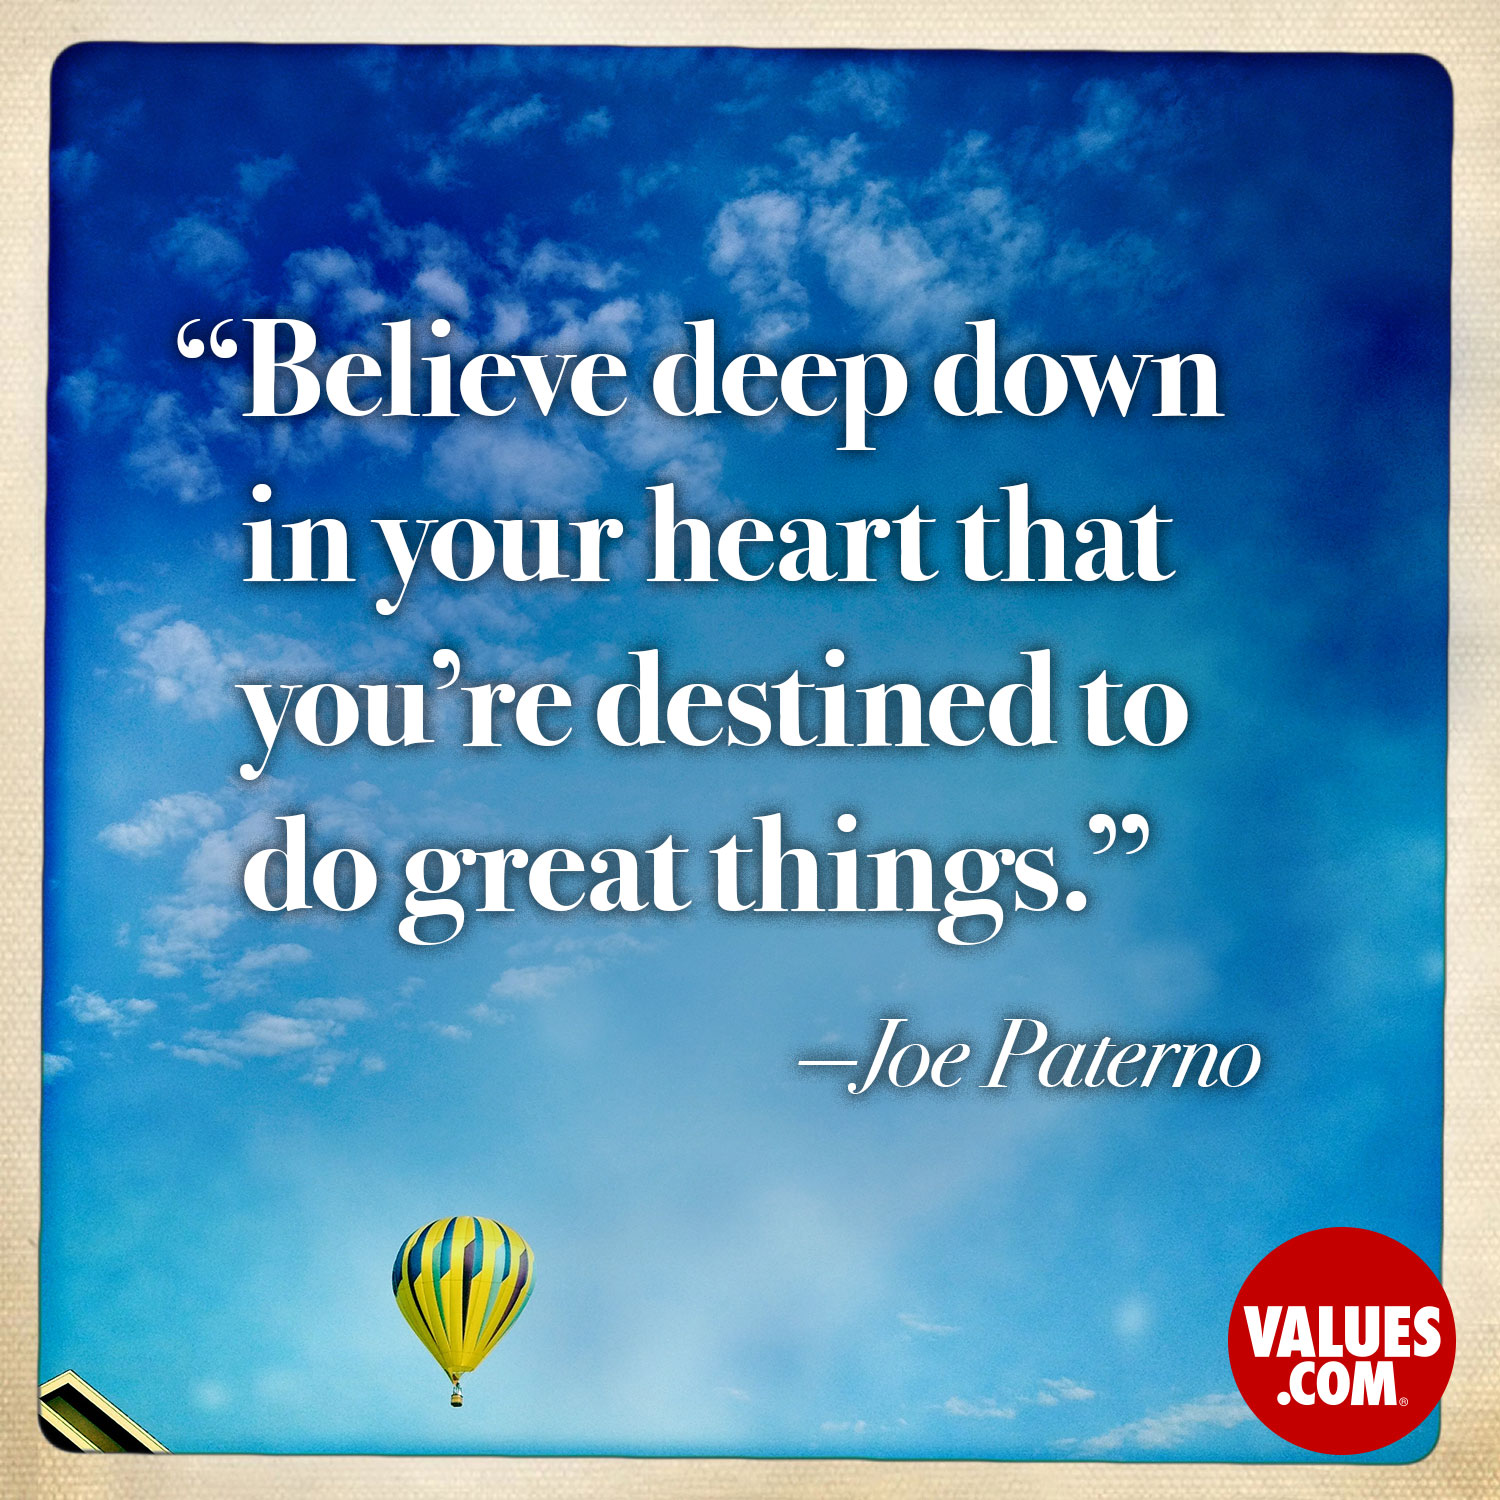 Believe deep down in your heart that you're destined to do great things. —Joe Paterno